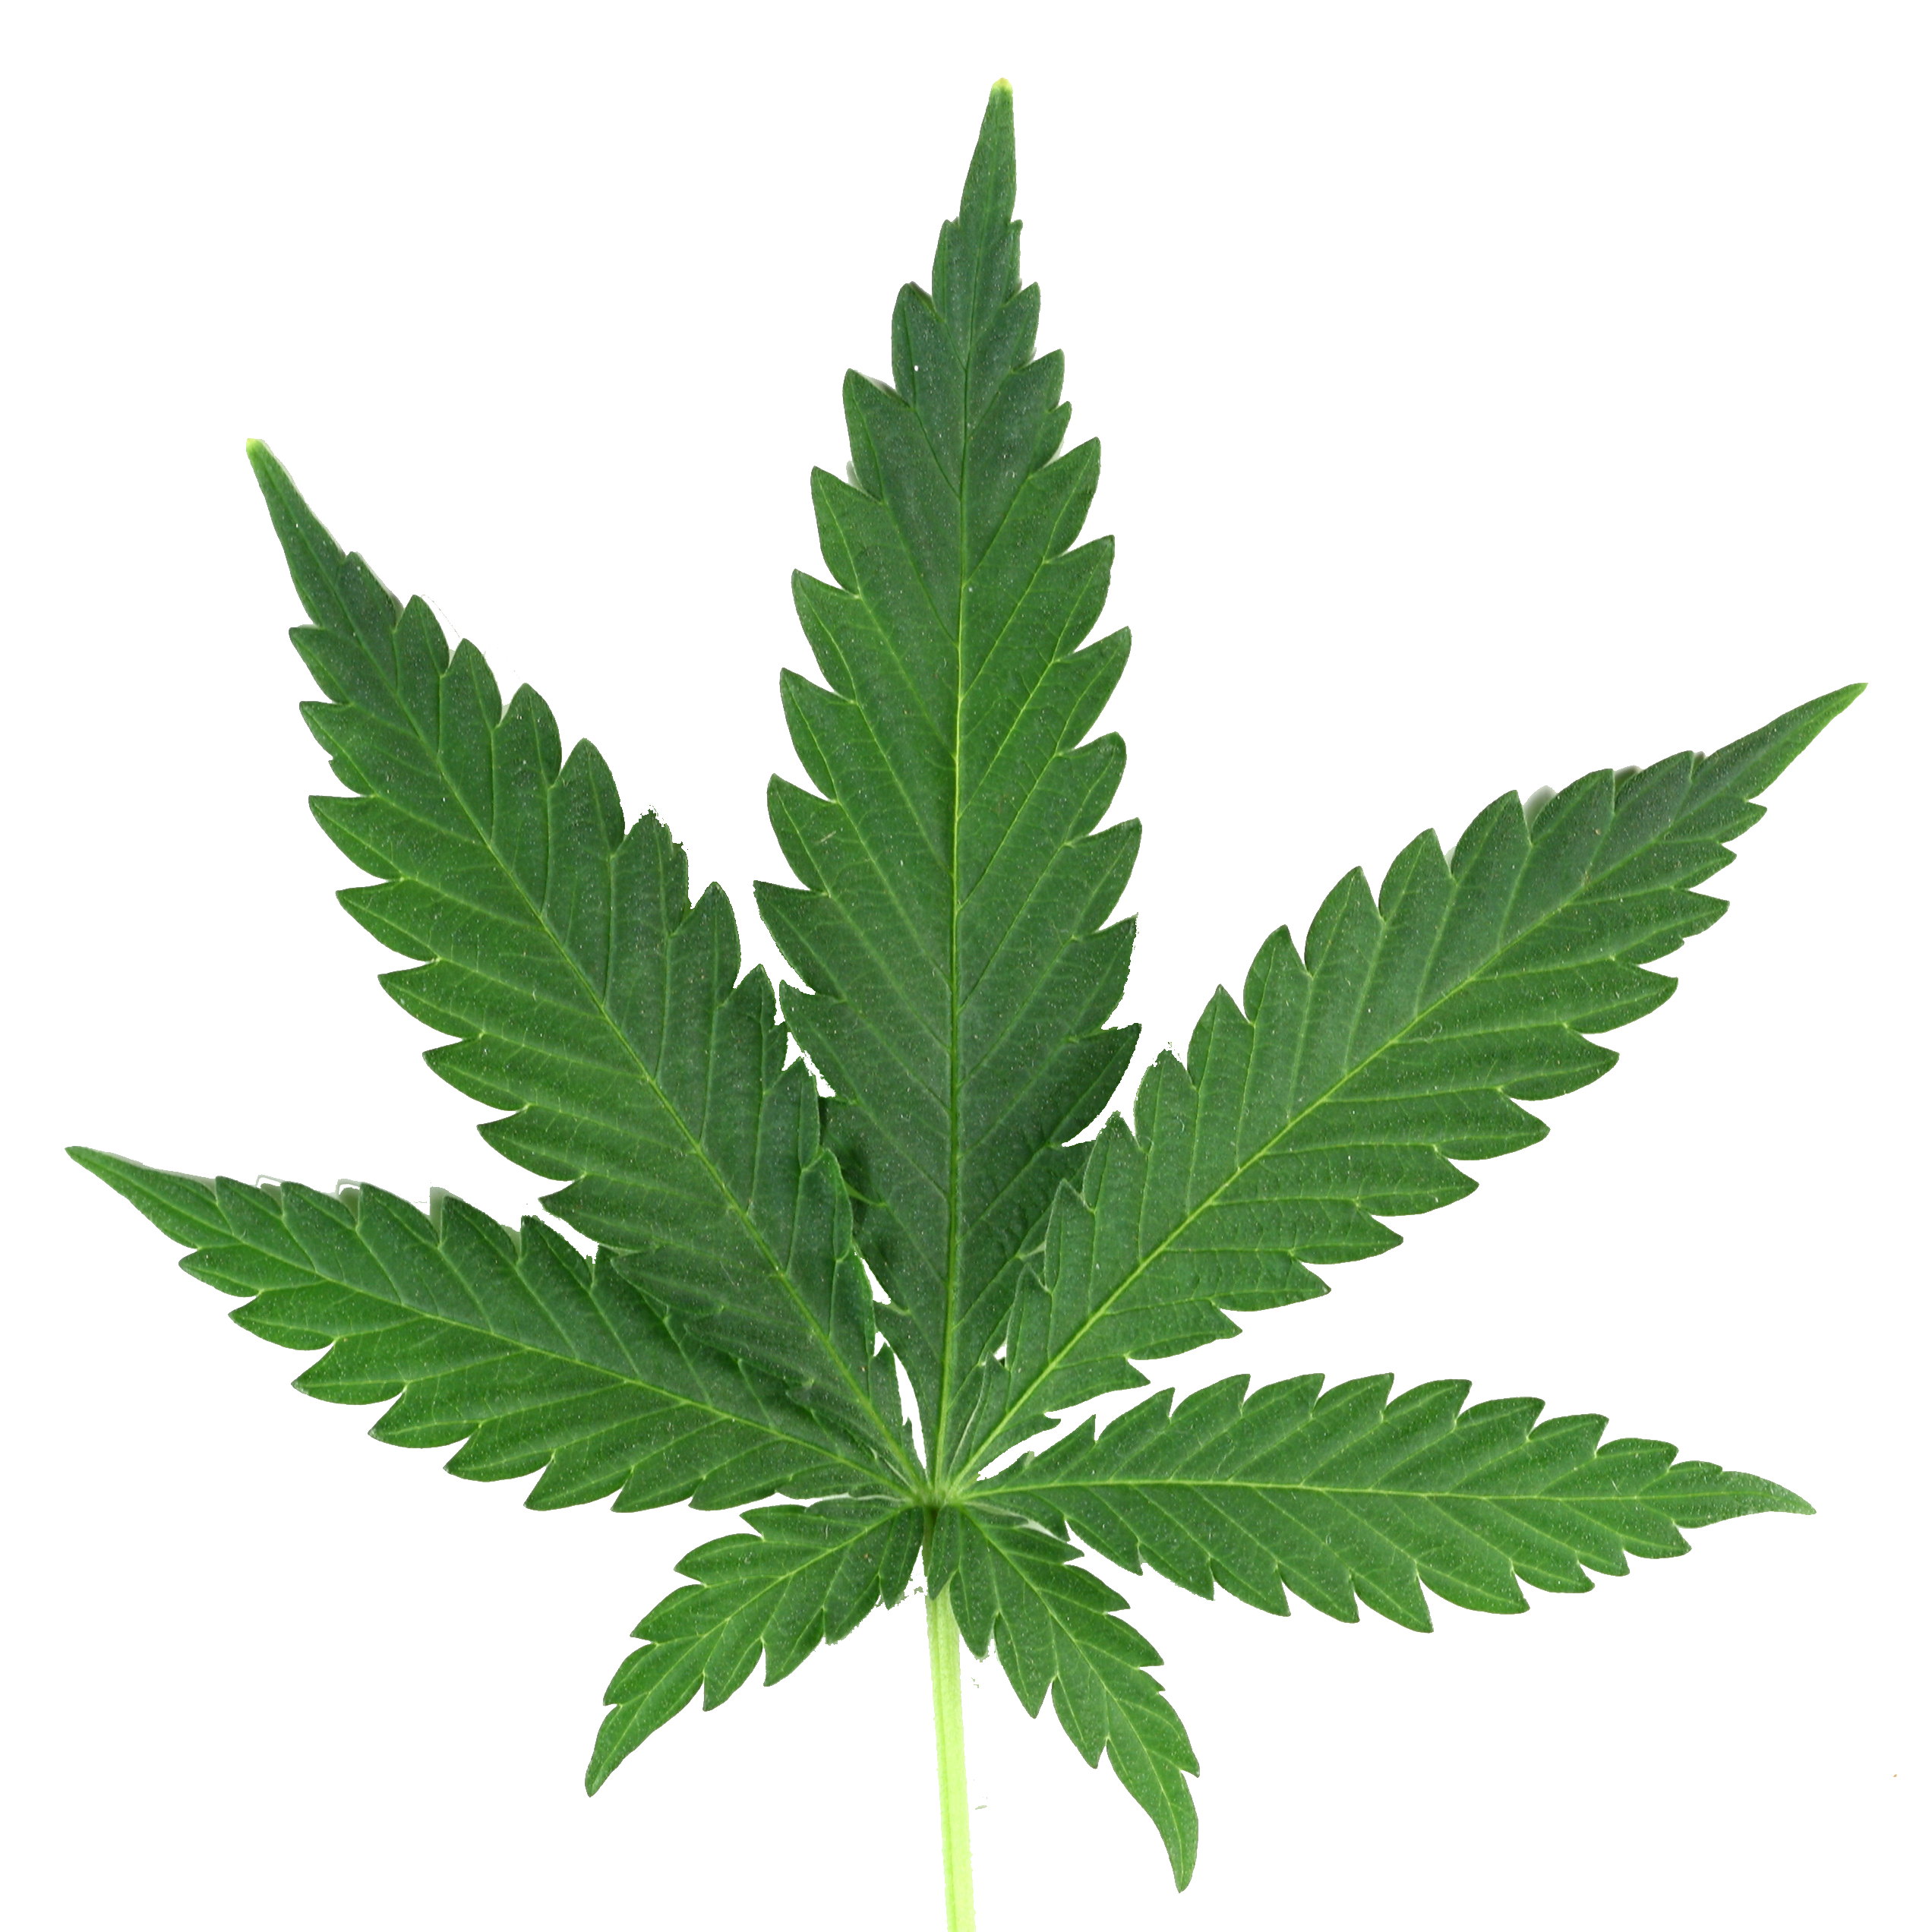 Pot Leaf Png & Free Pot Leaf.png Transparent Images #10360.